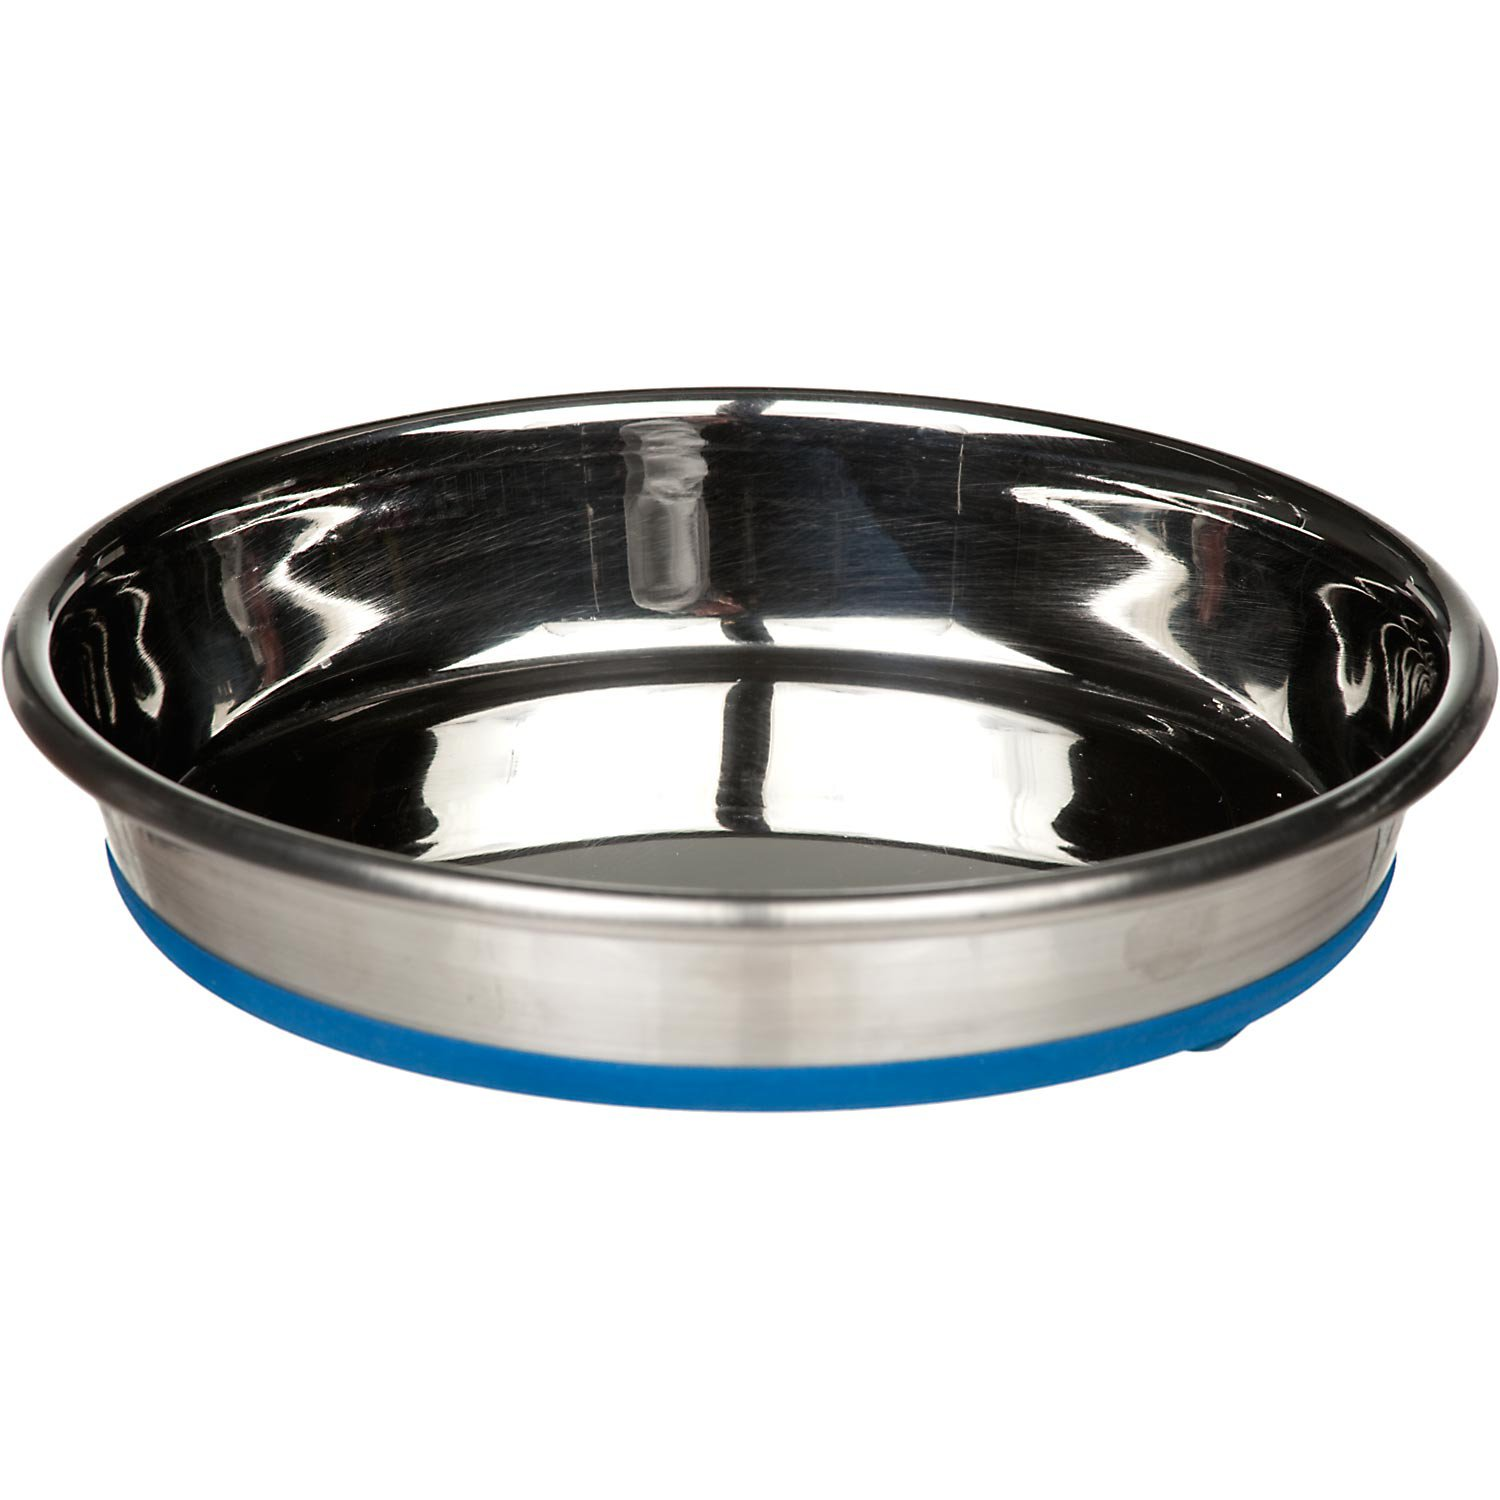 Our Pet 39 S Durapet Stainless Steel Cat Bowl Petco